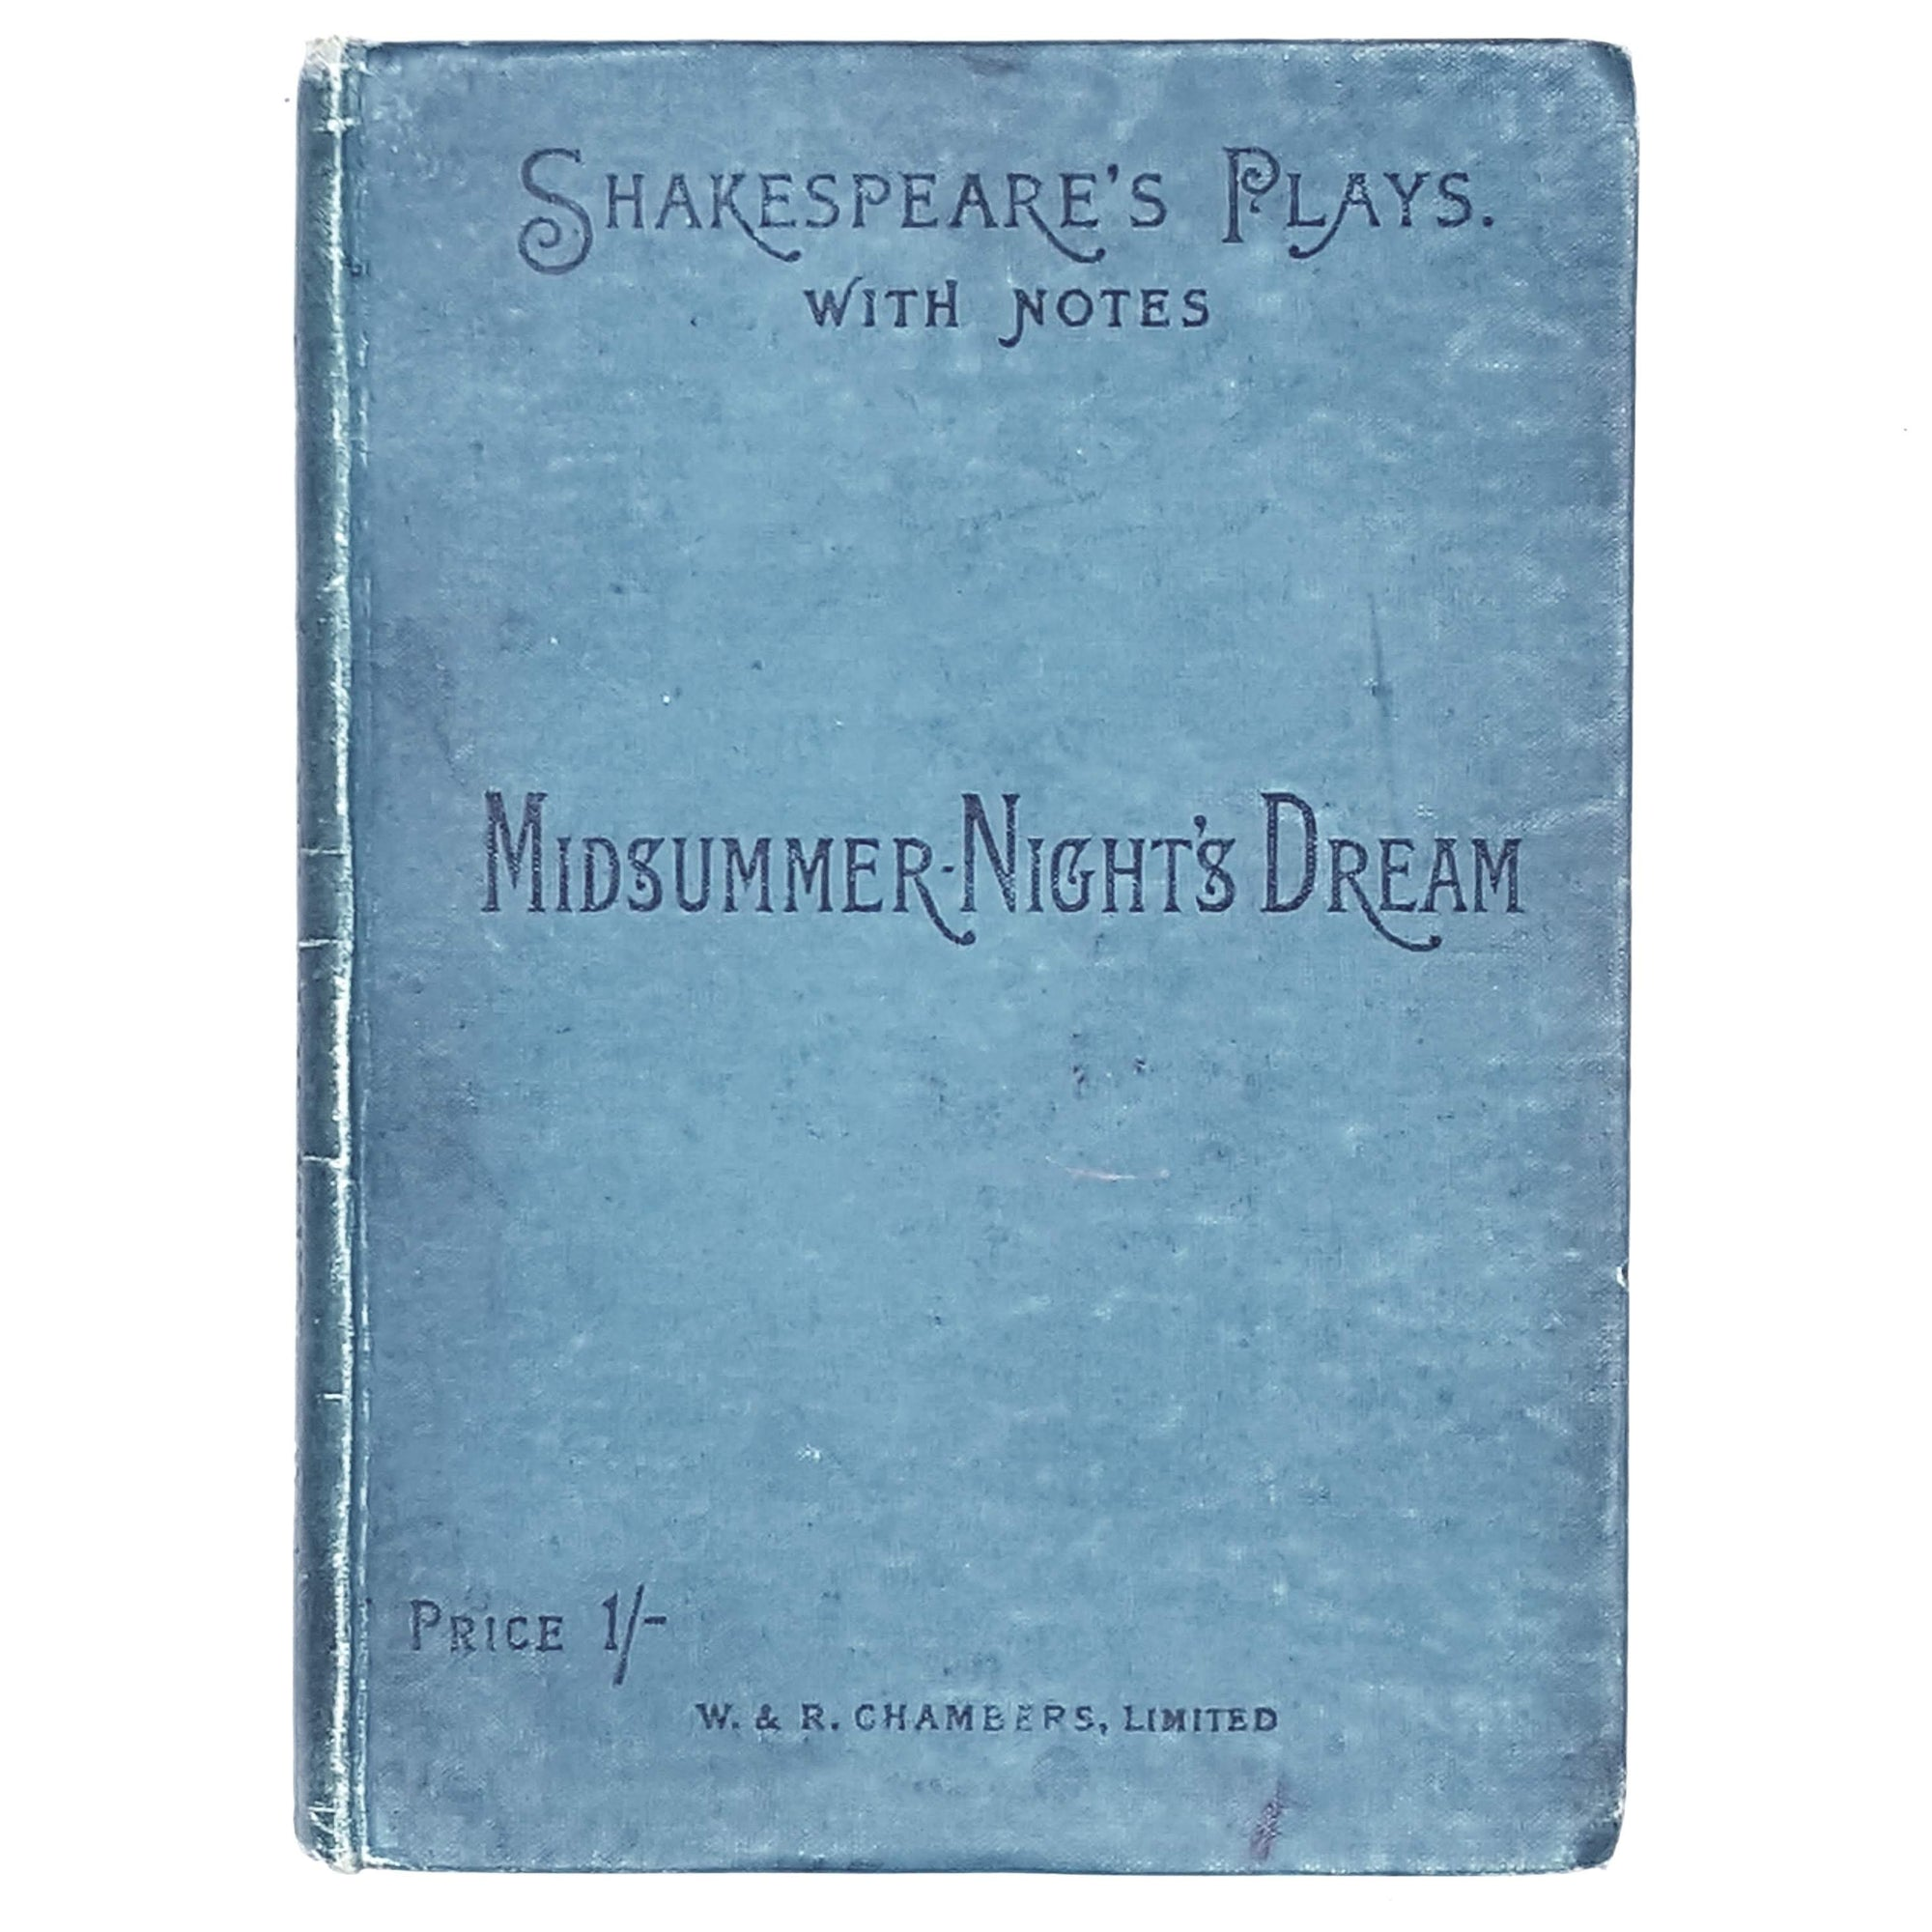 William Shakespeare's Midsummer Night's Dream with notes 1894